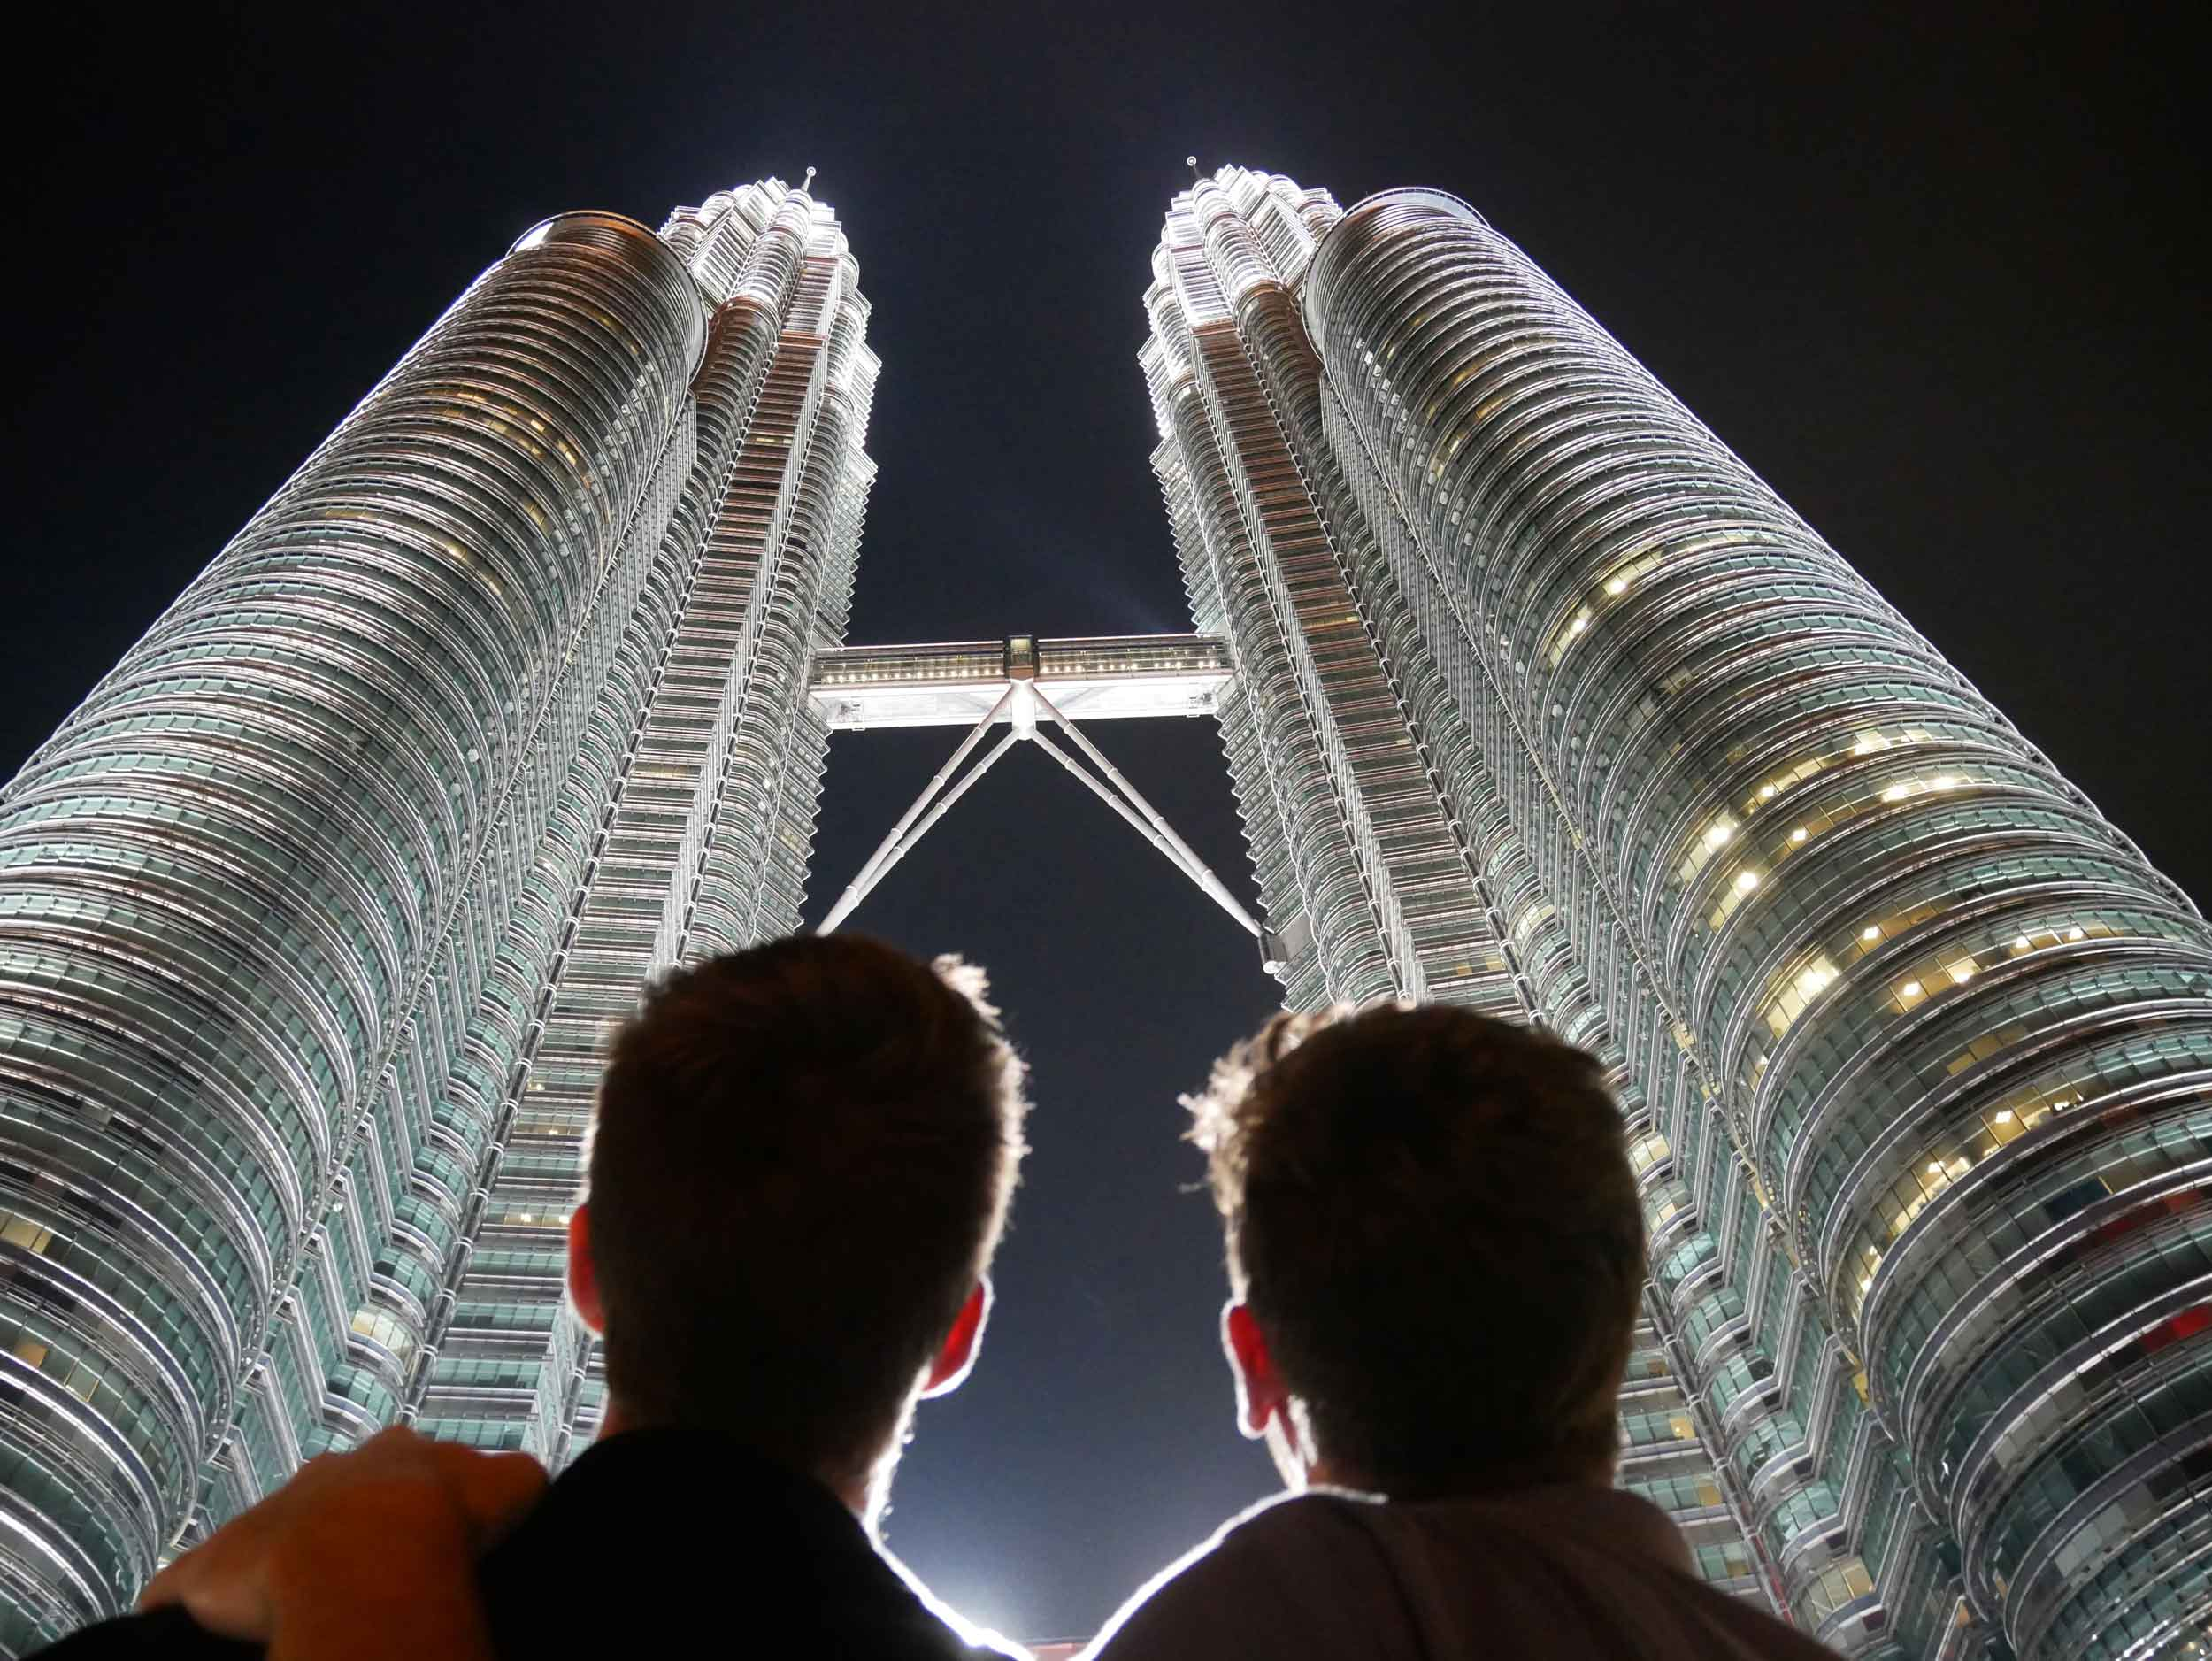 Already so impressed with Malaysia, we were awe-struck by the soaring Petronas Twin Towers as we arrived to Kuala Lumpur (May 12).